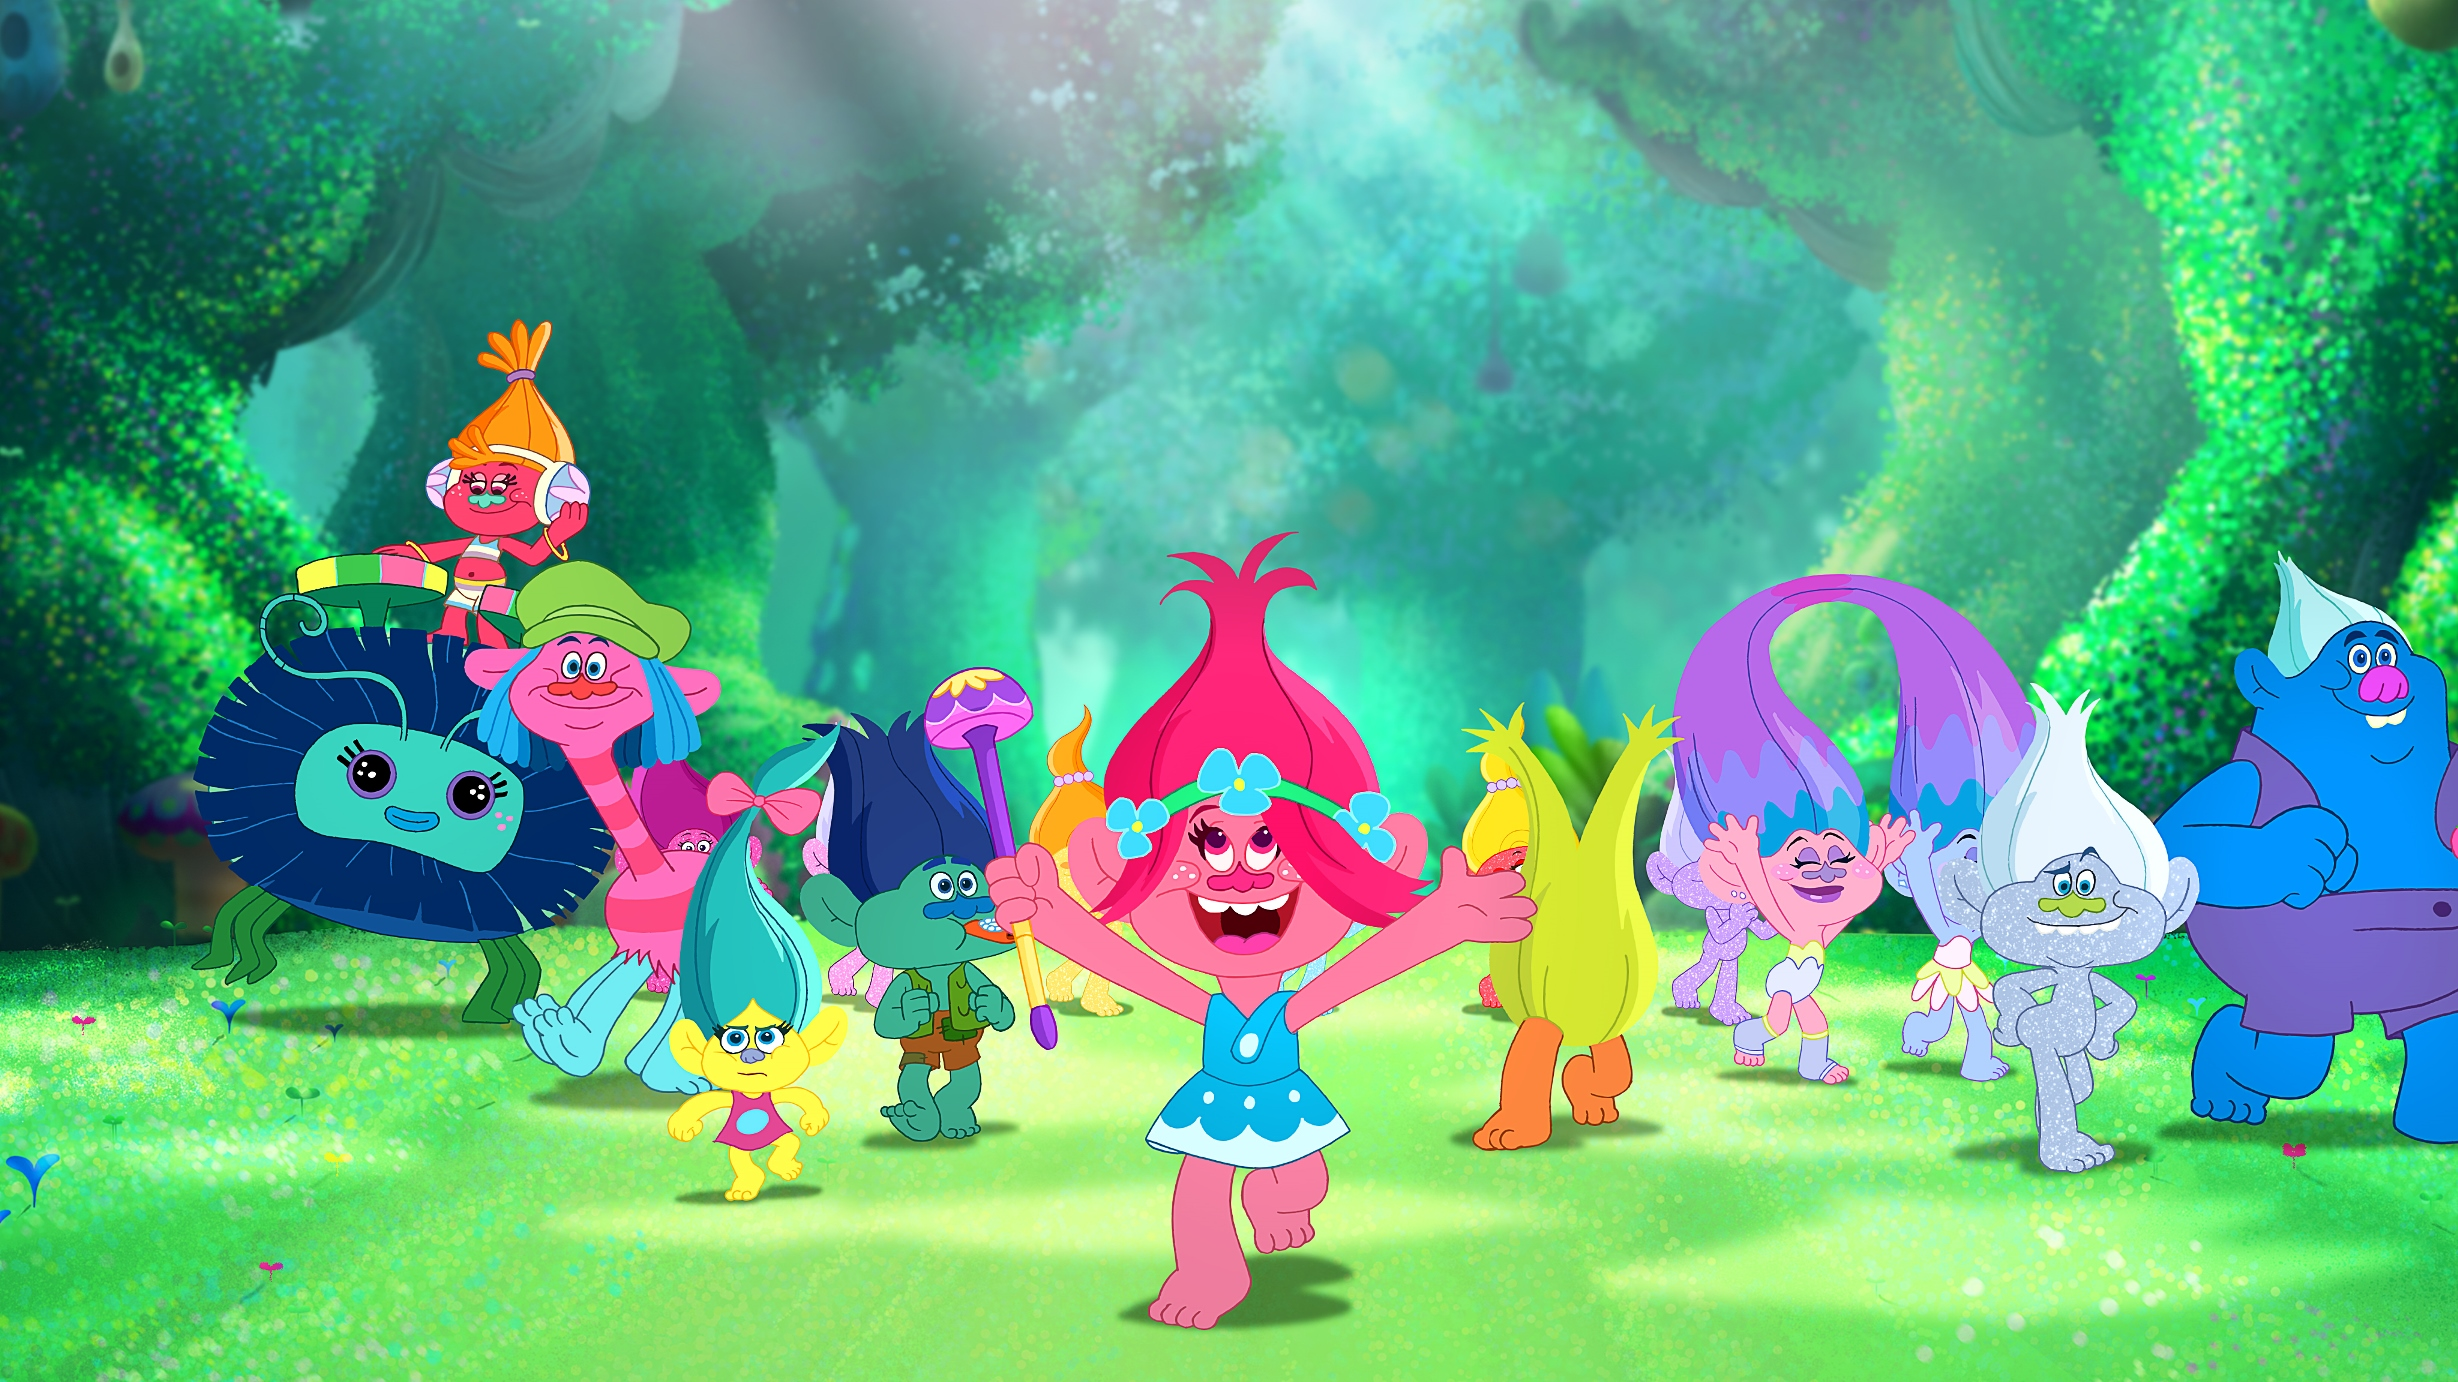 Trolls: The Beat Goes On + 5 Other DreamWorks Shows Coming to Netflix in 2018!